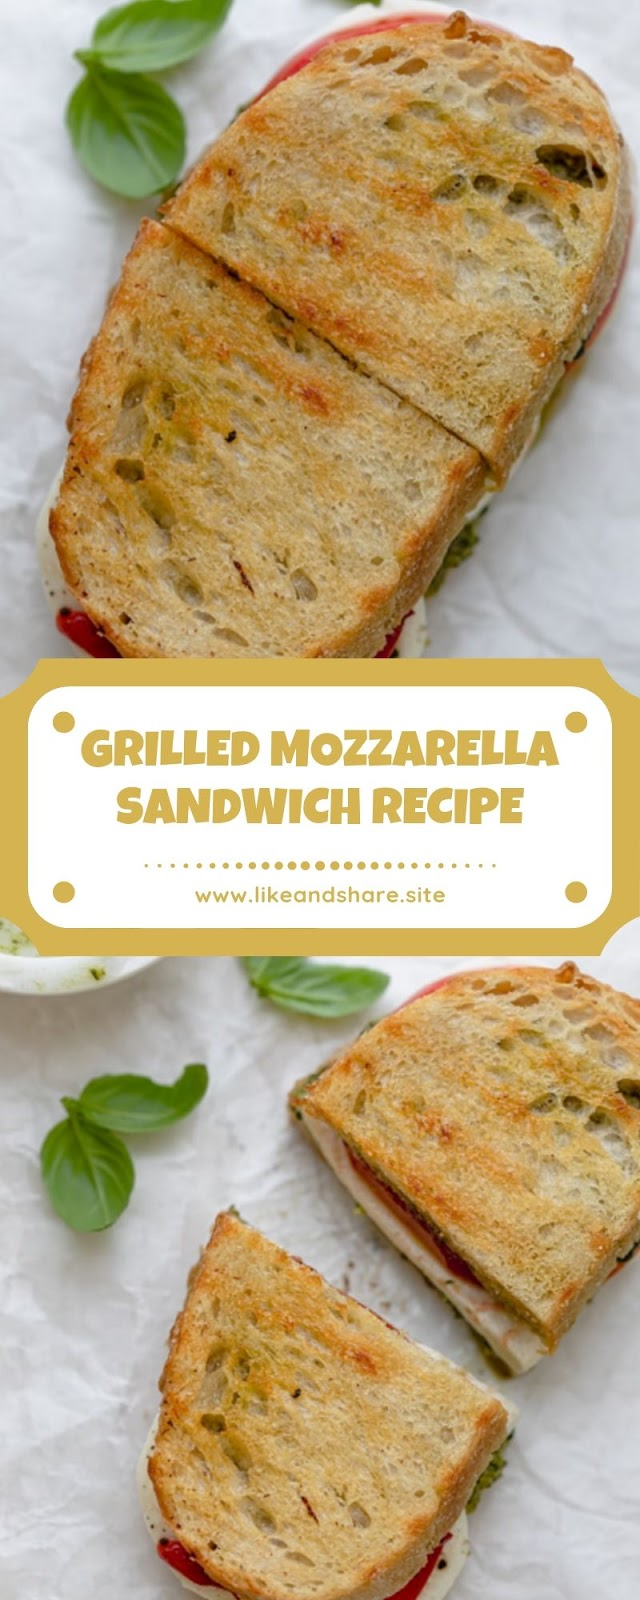 GRILLED MOZZARELLA SANDWICH RECIPE